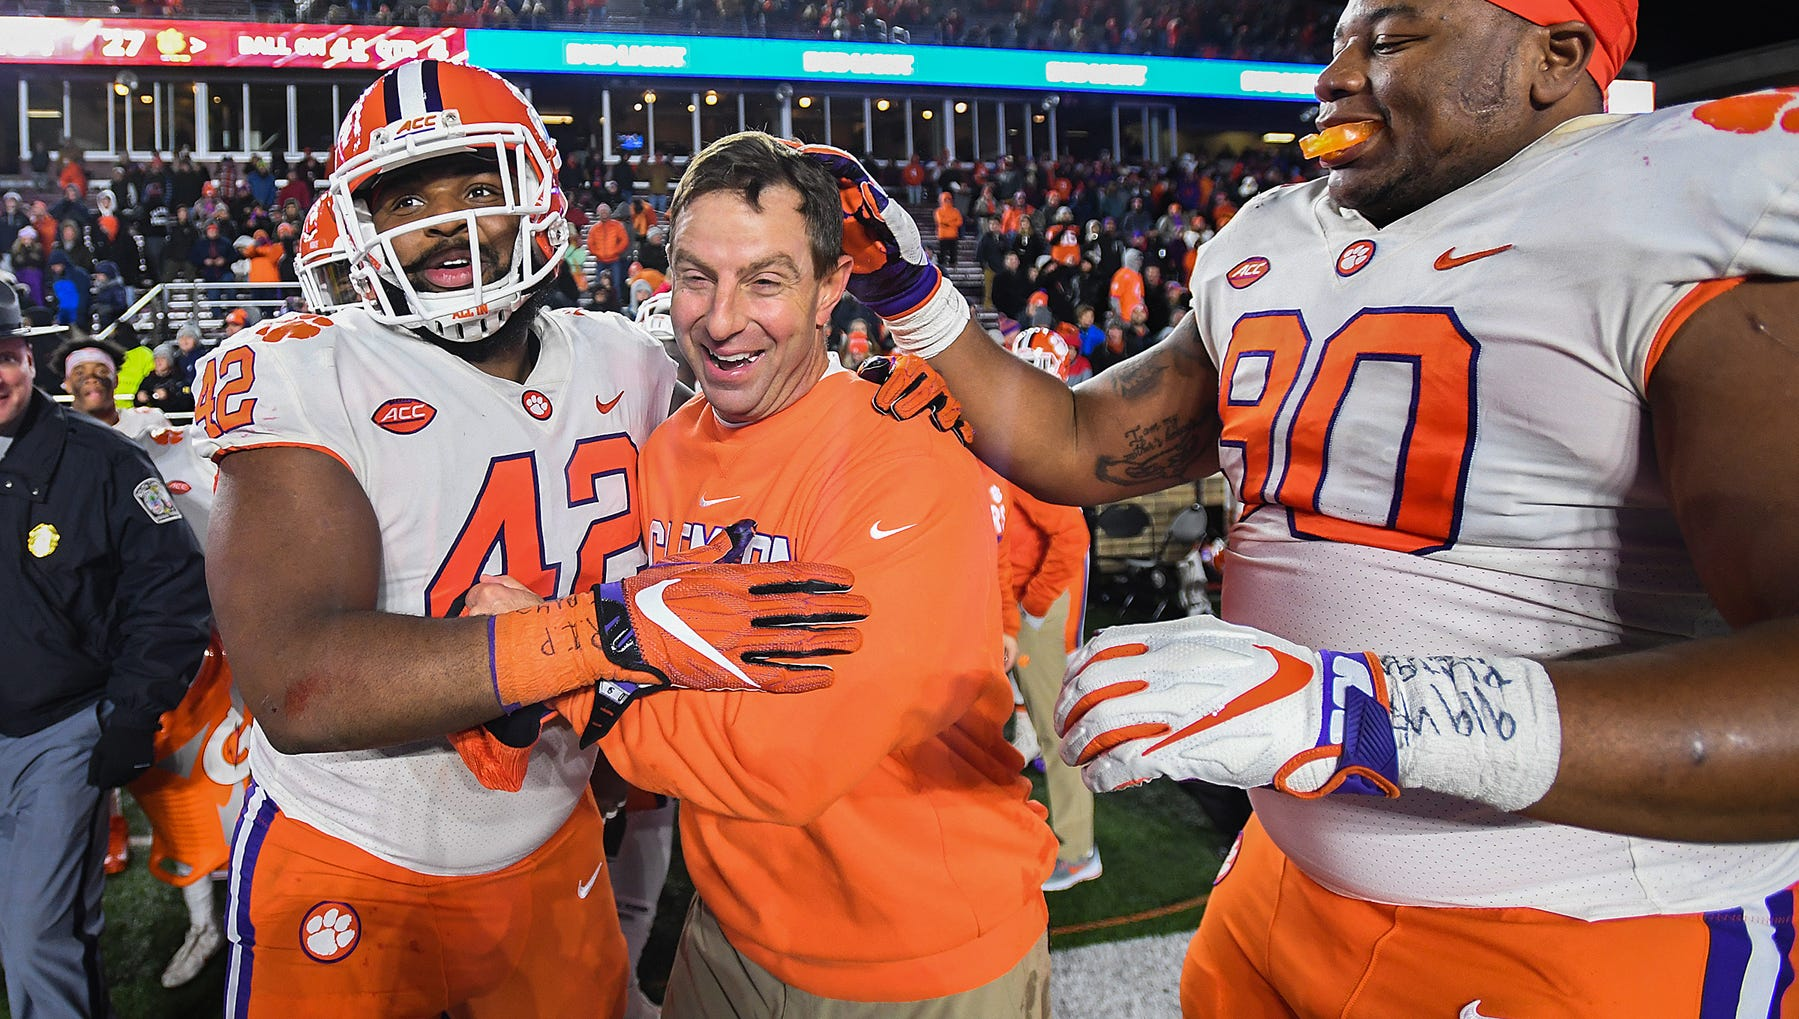 Clemson head coach Dabo Swinney celebrates the Tiger 27-7 win over Boston College with defensive lineman Christian Wilkins (42), left, and defensive lineman Dexter Lawrence (90) at Boston College's Alumni Stadium in Chestnut Hill, MA. Saturday, November 10, 2018.